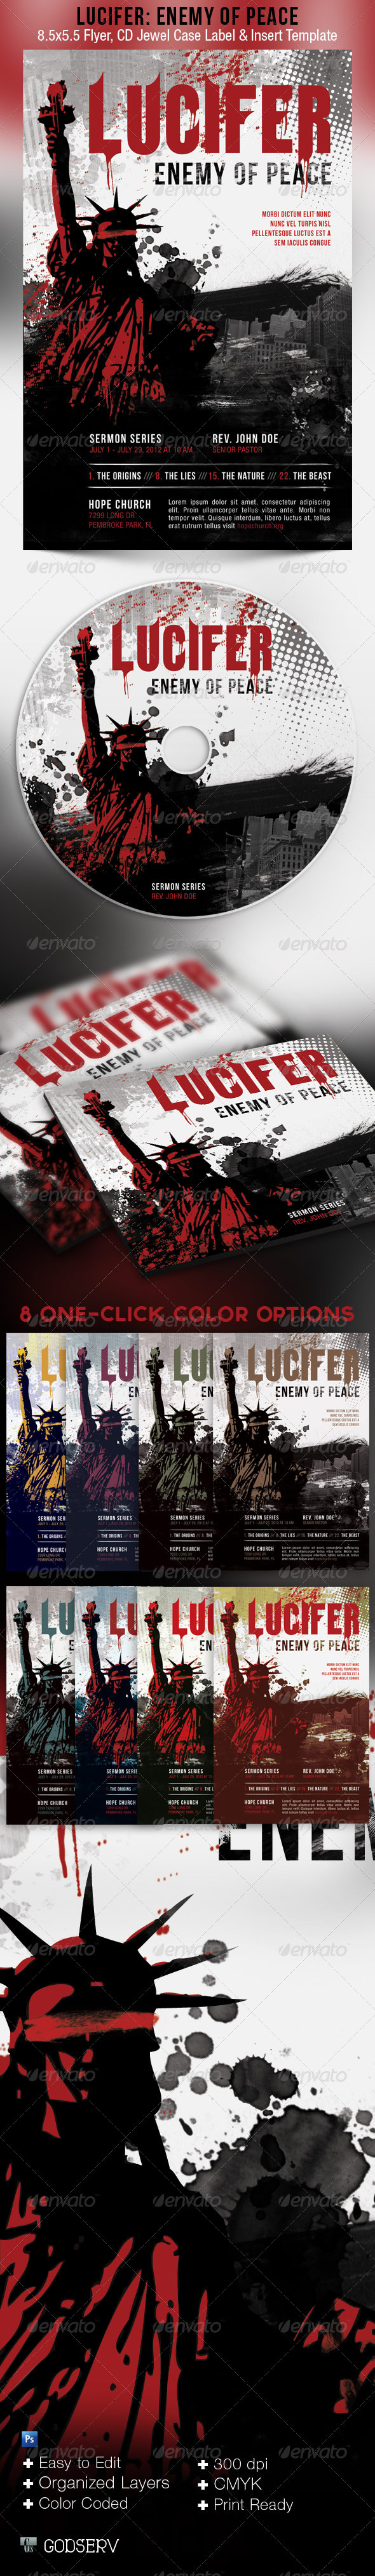 Lucifer Enemy of Peace Flyer and CD Template - Church Flyers